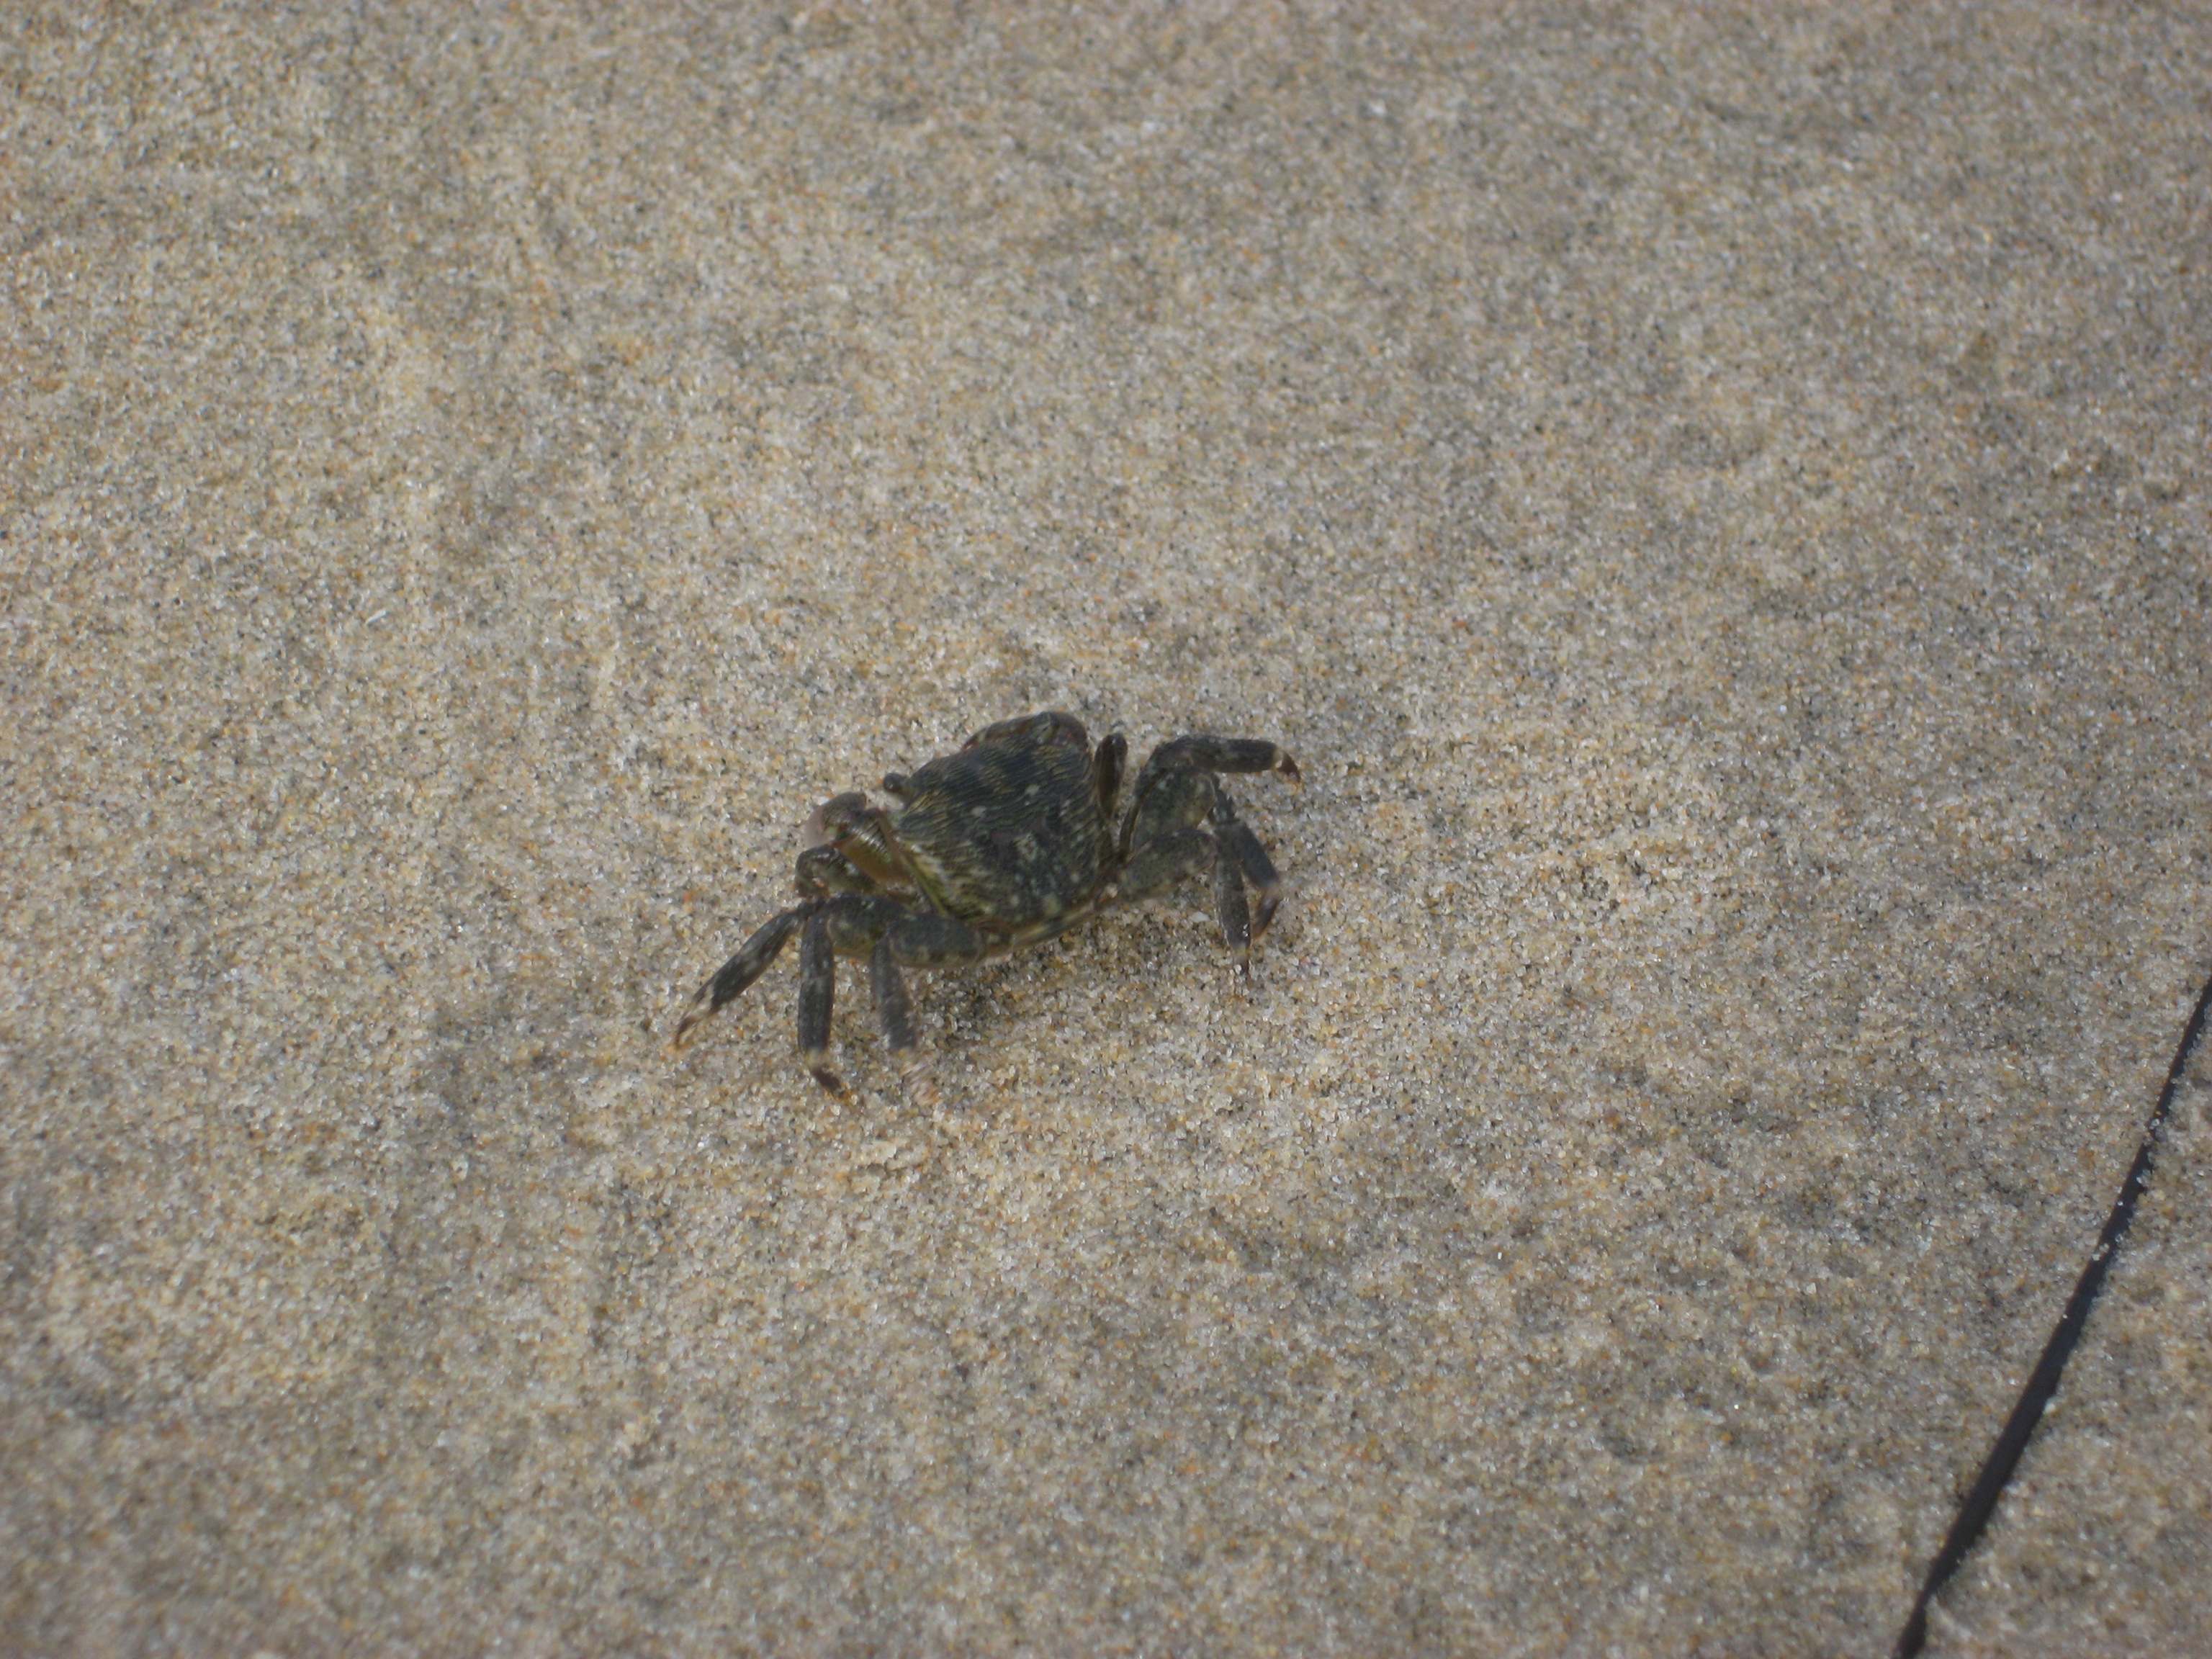 Crab walking barefoot, Crystal Cove CA